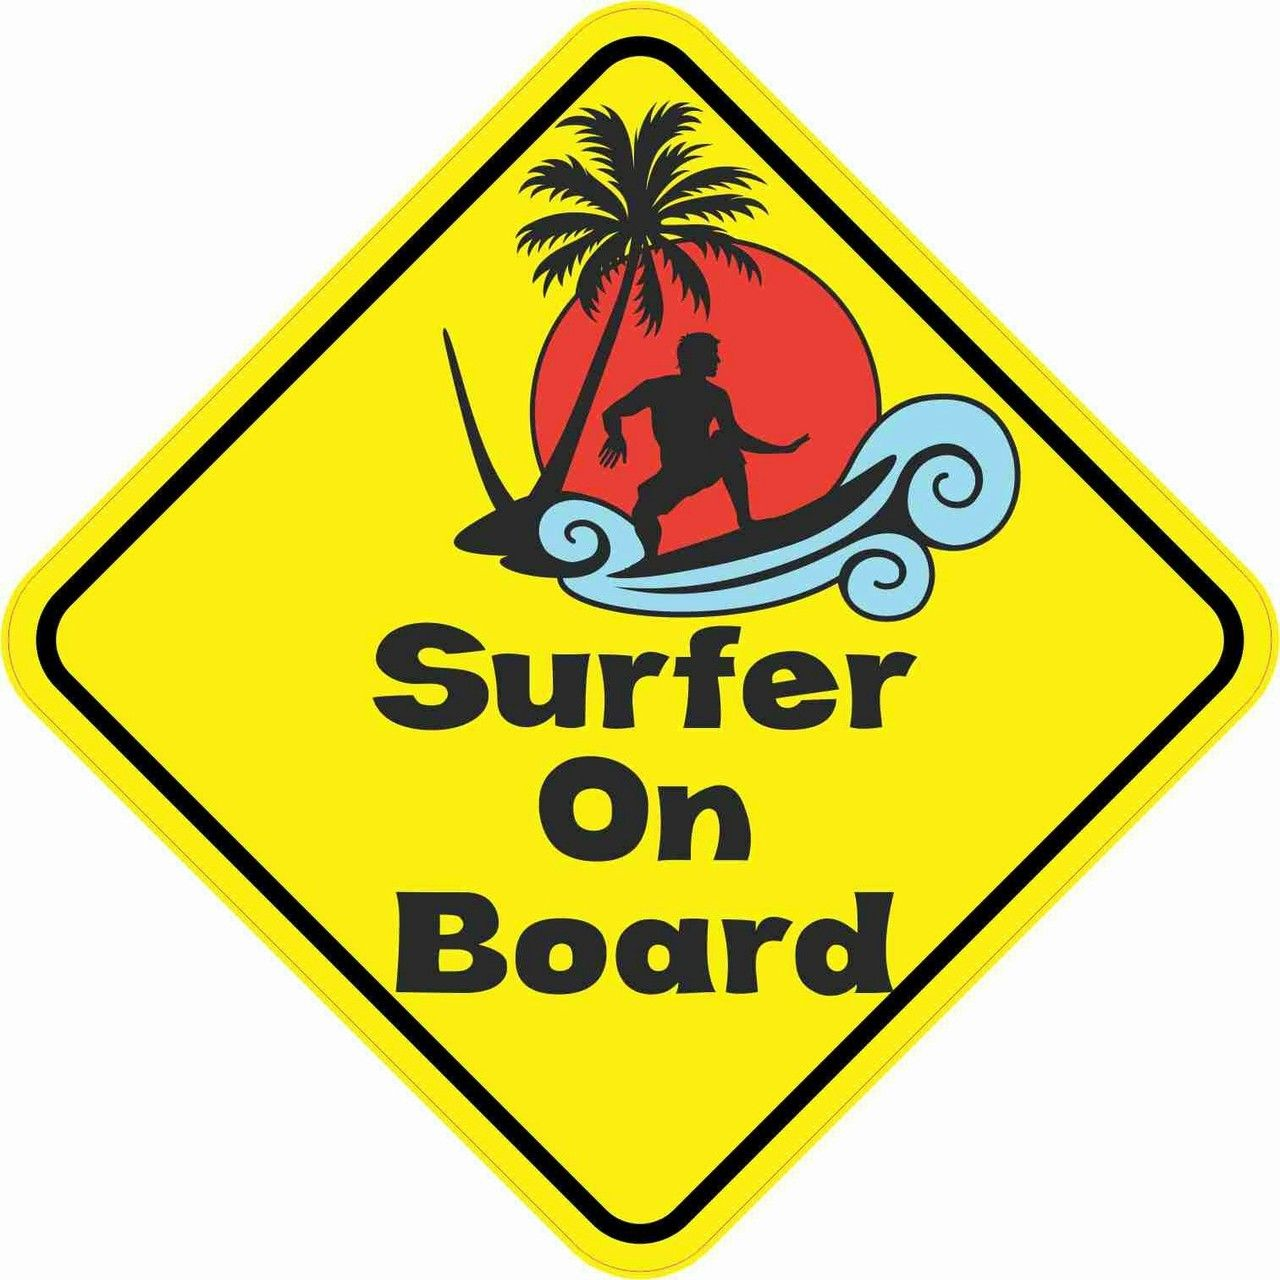 5in X 5in Surfer On Board Sticker Surf Logo Colorful Pictures Surfer [ 1280 x 1280 Pixel ]